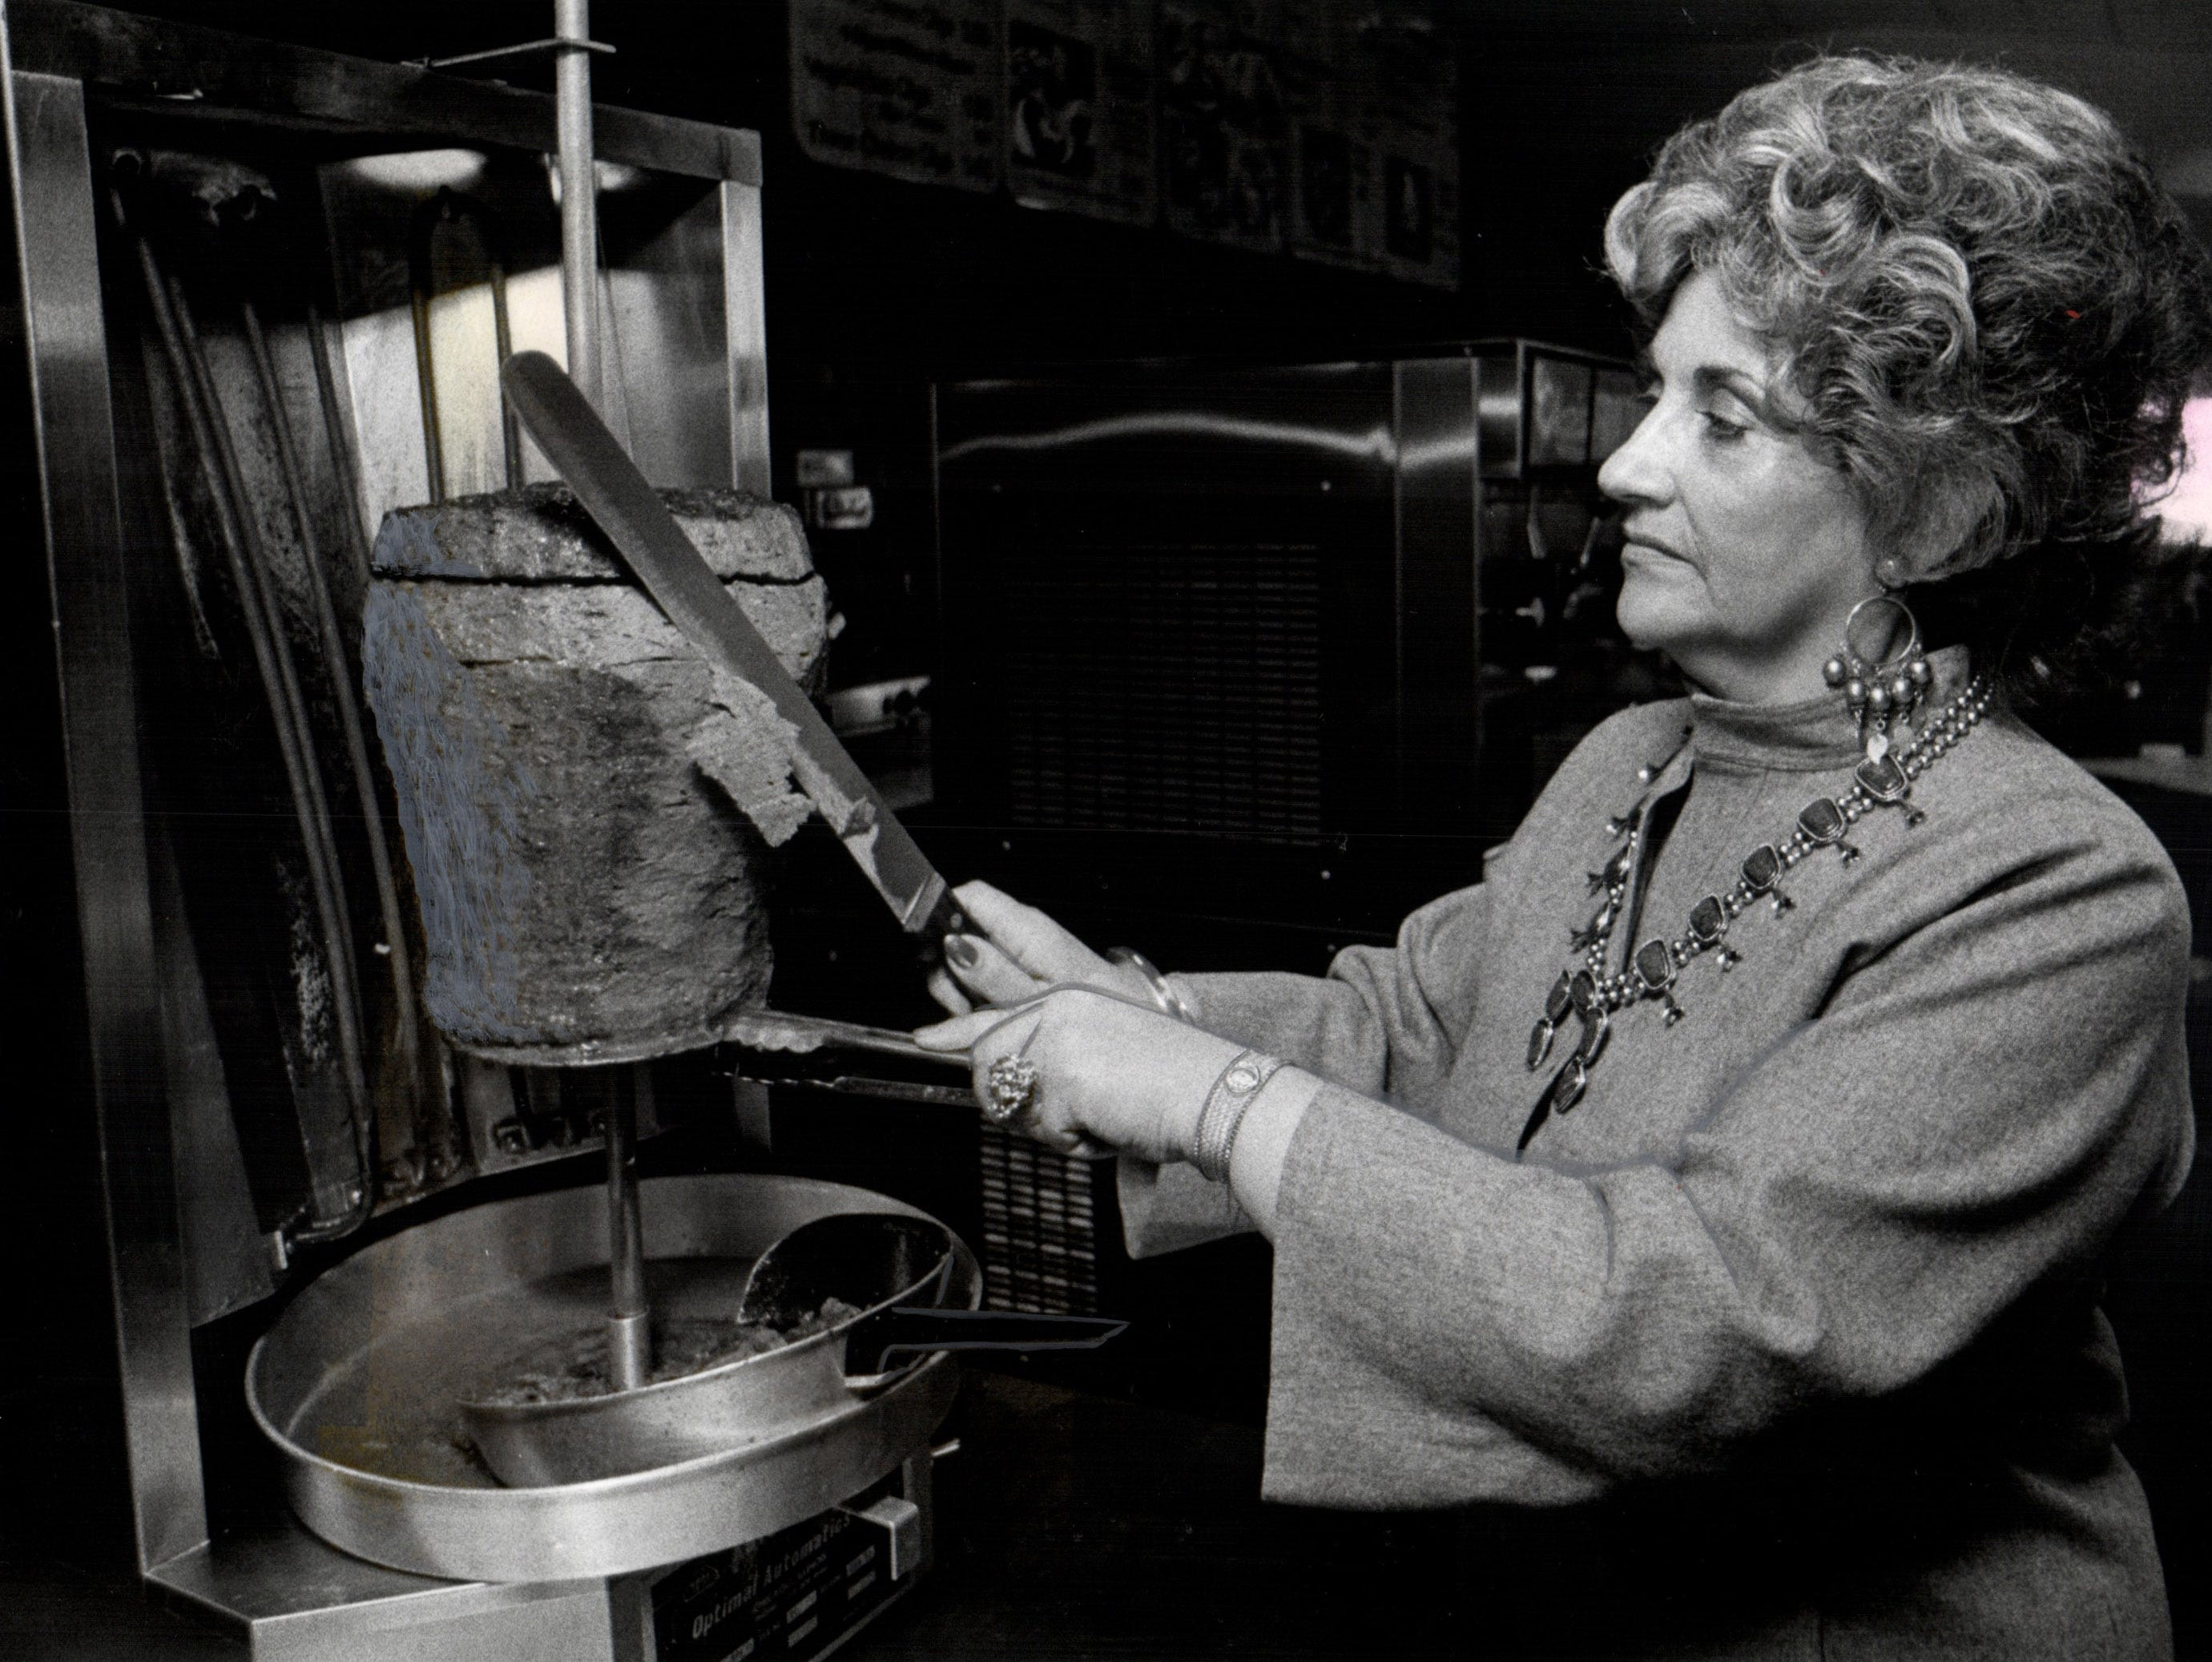 Olga Loizon is photographed carving meat in 1978.